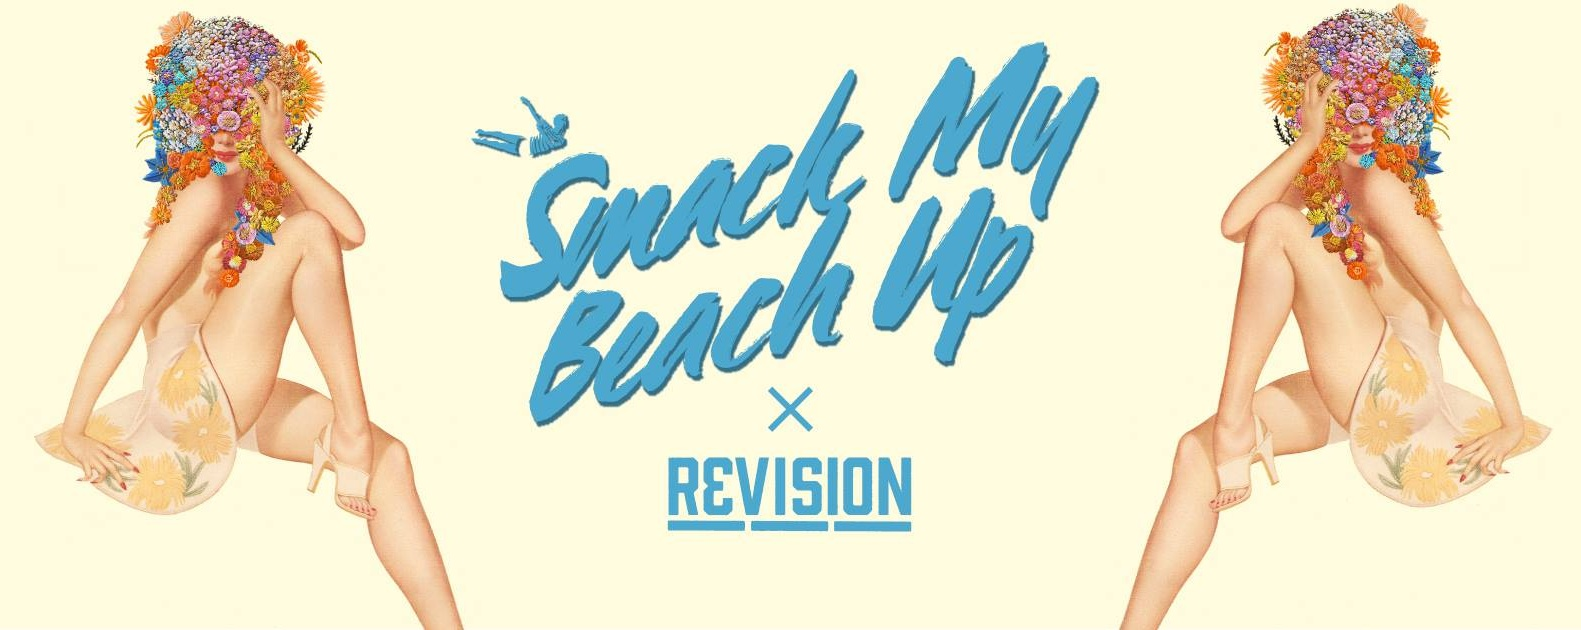 SMACK MY BEACH UP X REVISION